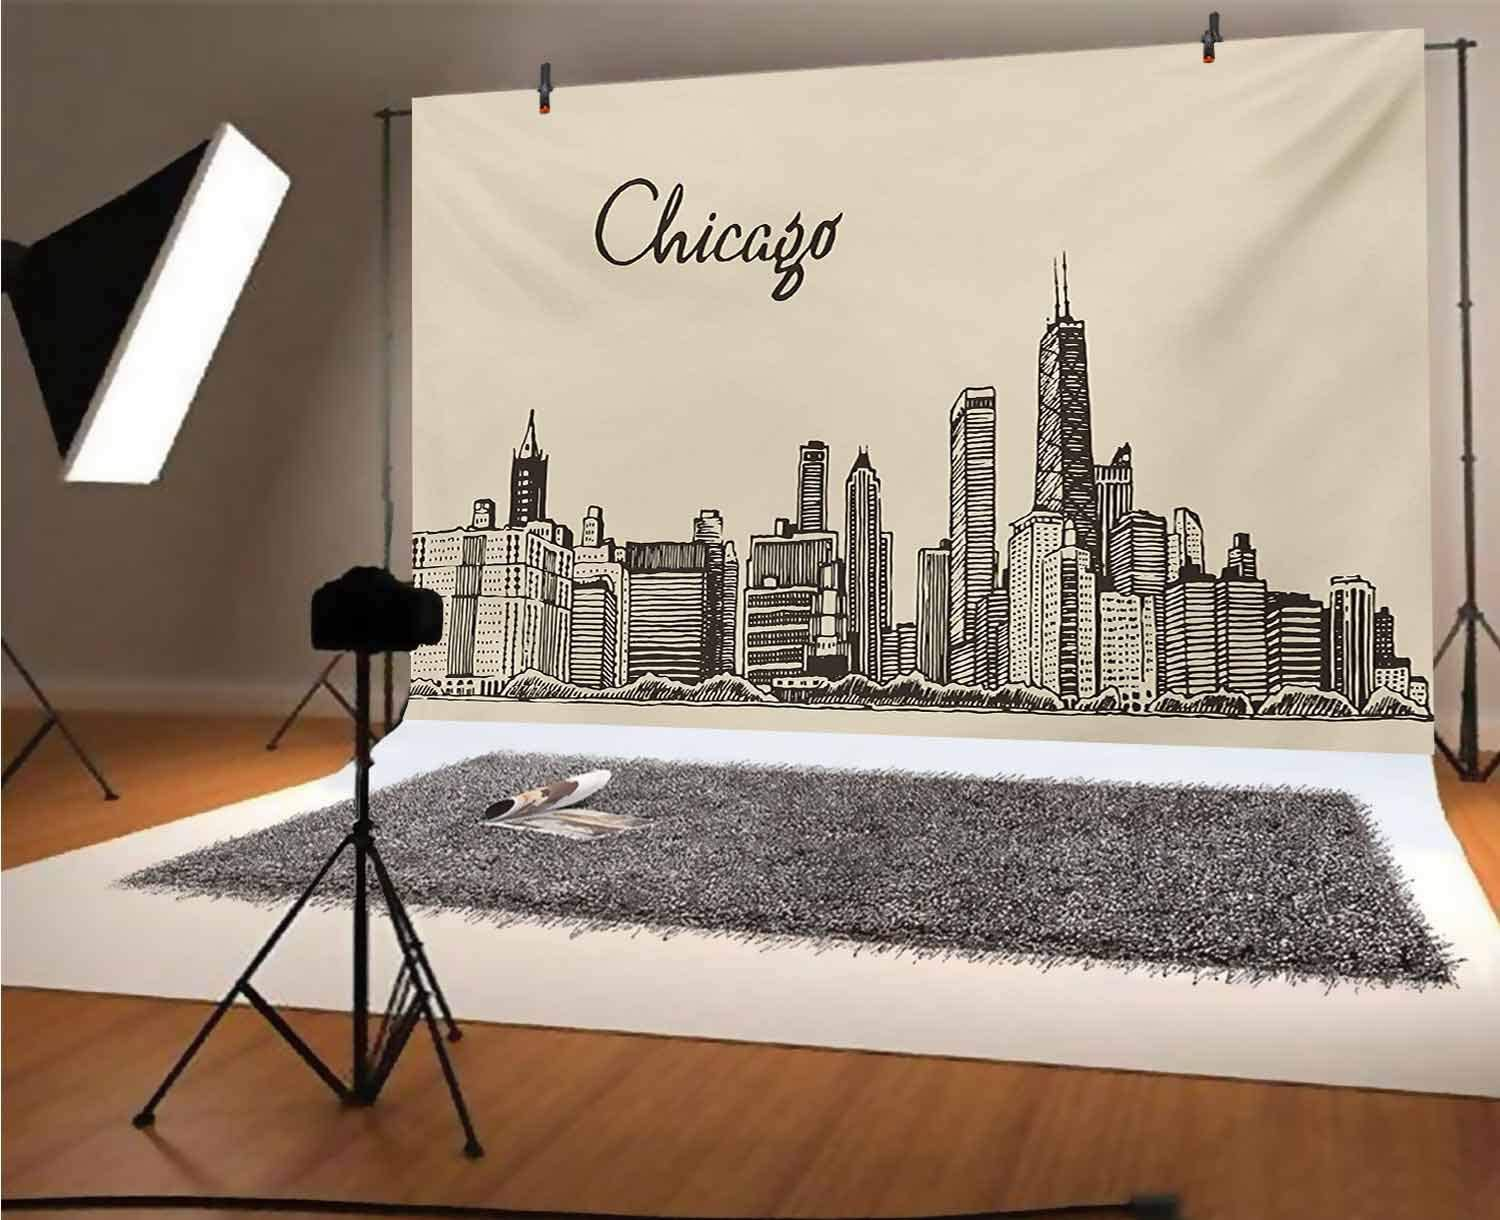 Chicago Skyline 7x5 FT Vinyl Backdrop PhotographersVintage Style Urban Silhouette Country Culture Architecture Capital Background for Party Home Decor Outdoorsy Theme Shoot Props